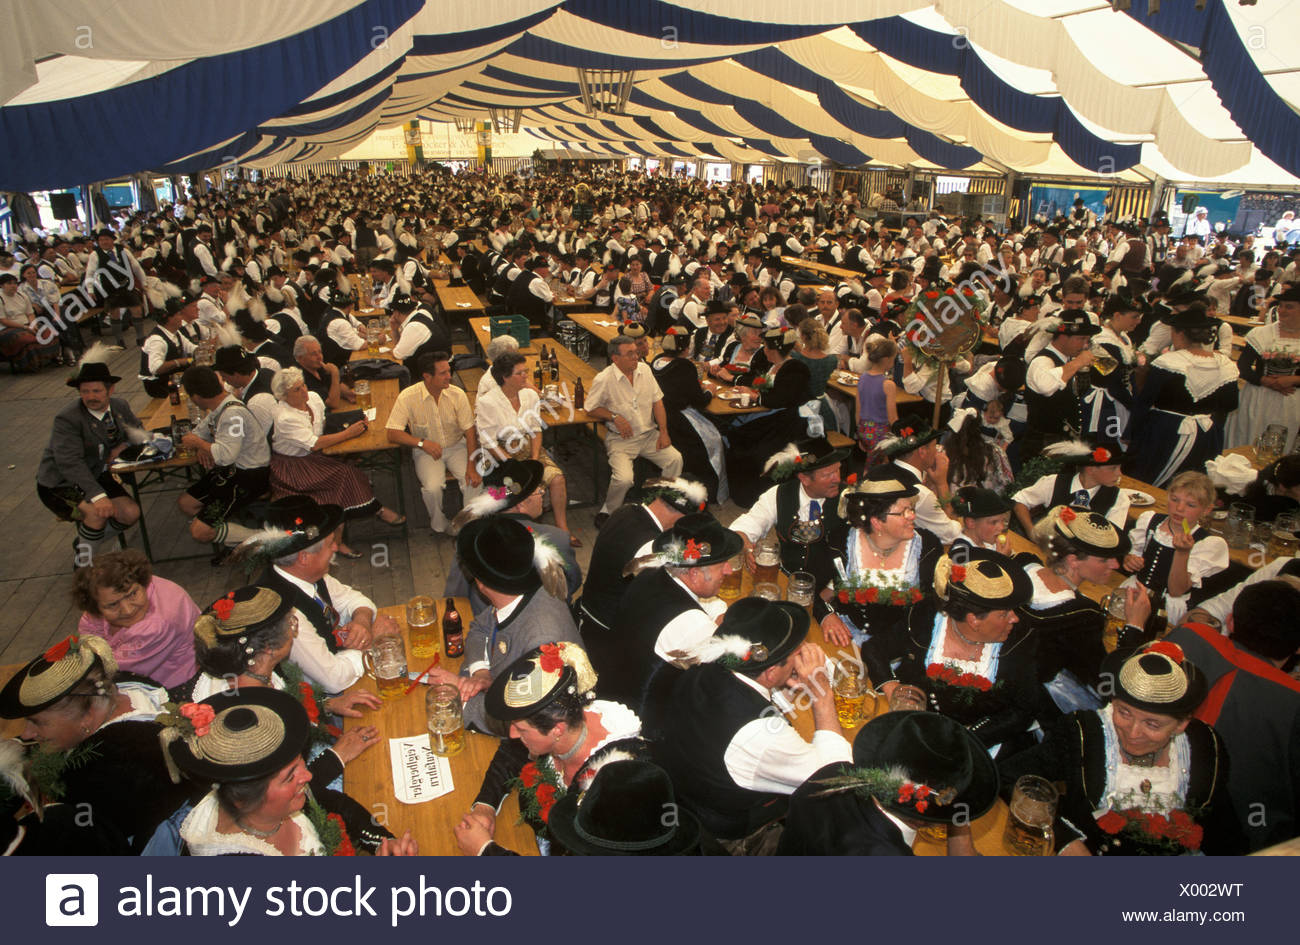 Attendees dressed in traditional costume sitting in the festival tent during the Loisachgau Festival in Egling, Upper Bavaria,  Stock Photo